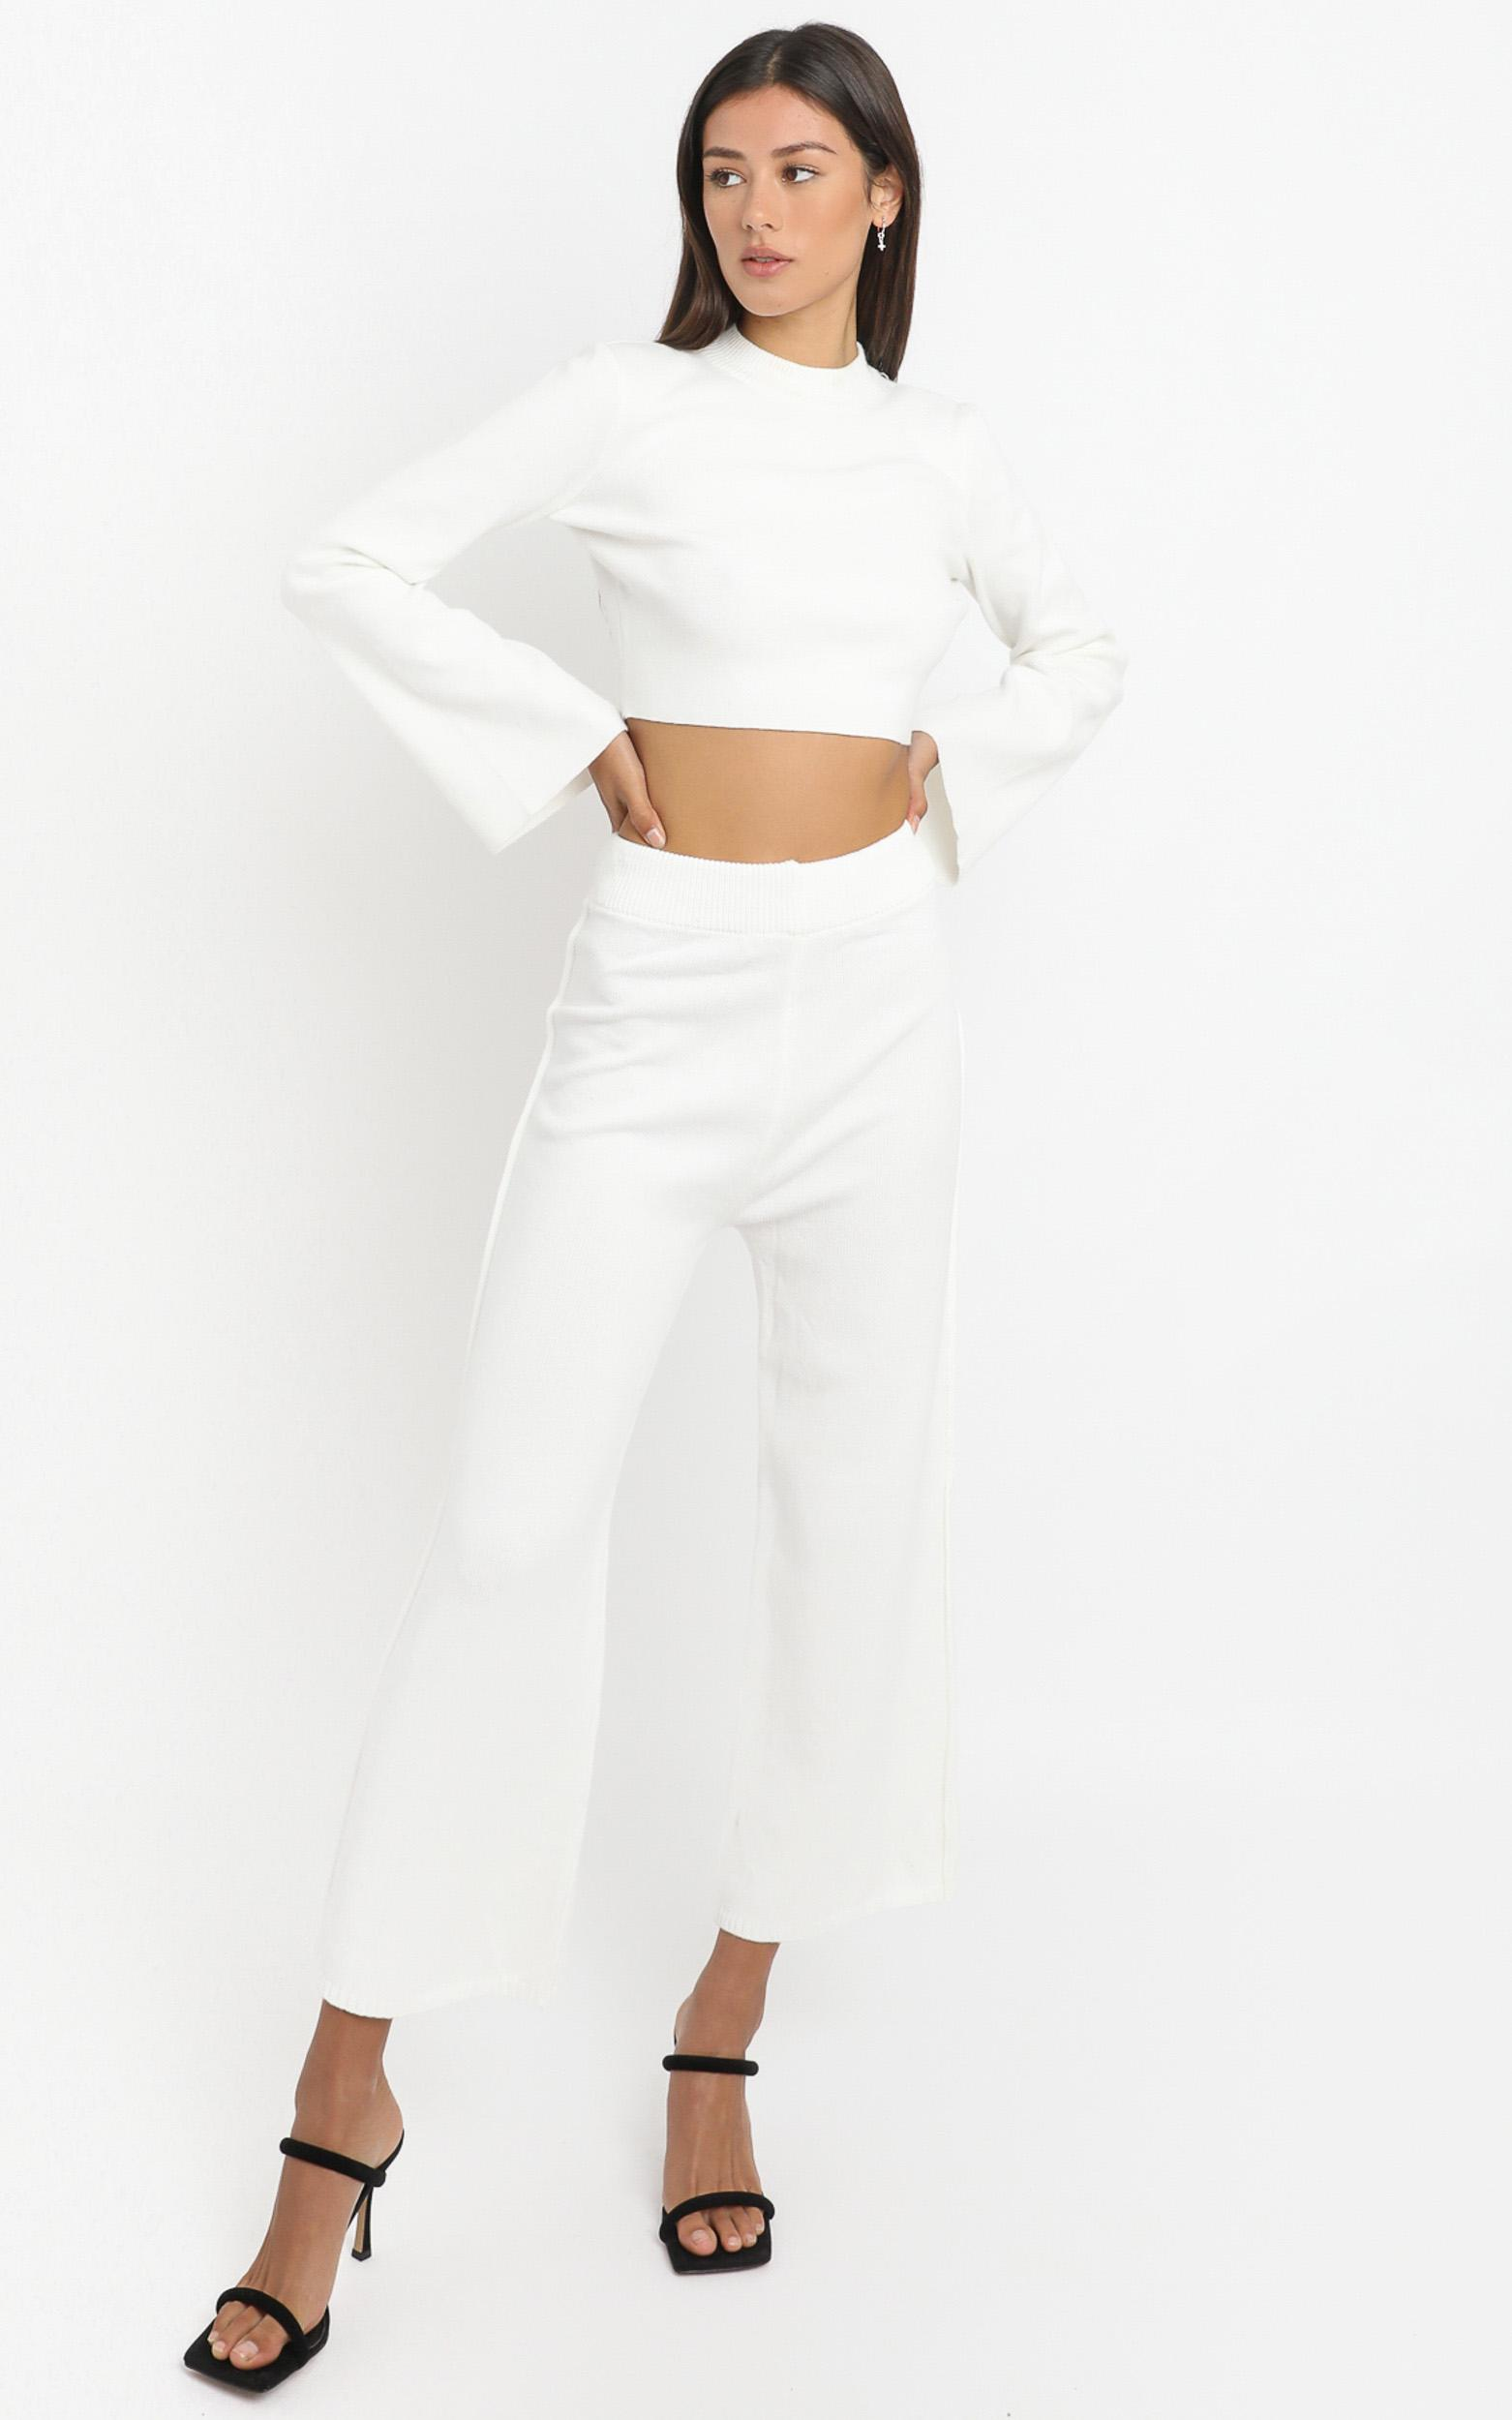 Sinead Knit Wide leg in Cream - 8 (S), CRE1, hi-res image number null